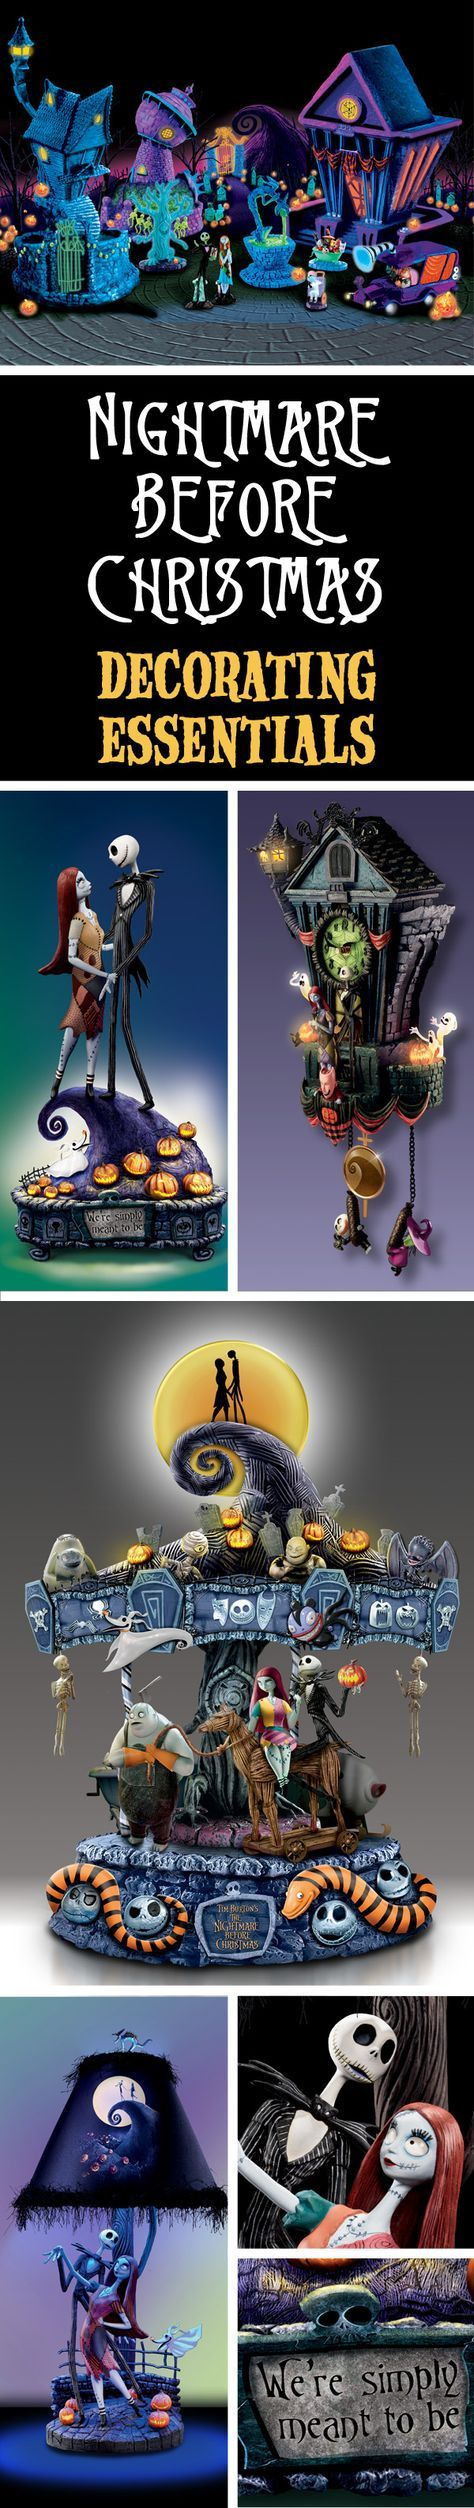 Scared of being unprepared this holiday season? Add some spooktacular accents to your home with our Disney-licensed Nightmare Before Christmas décor. All your favorite Halloween Town characters are ready to greet you!